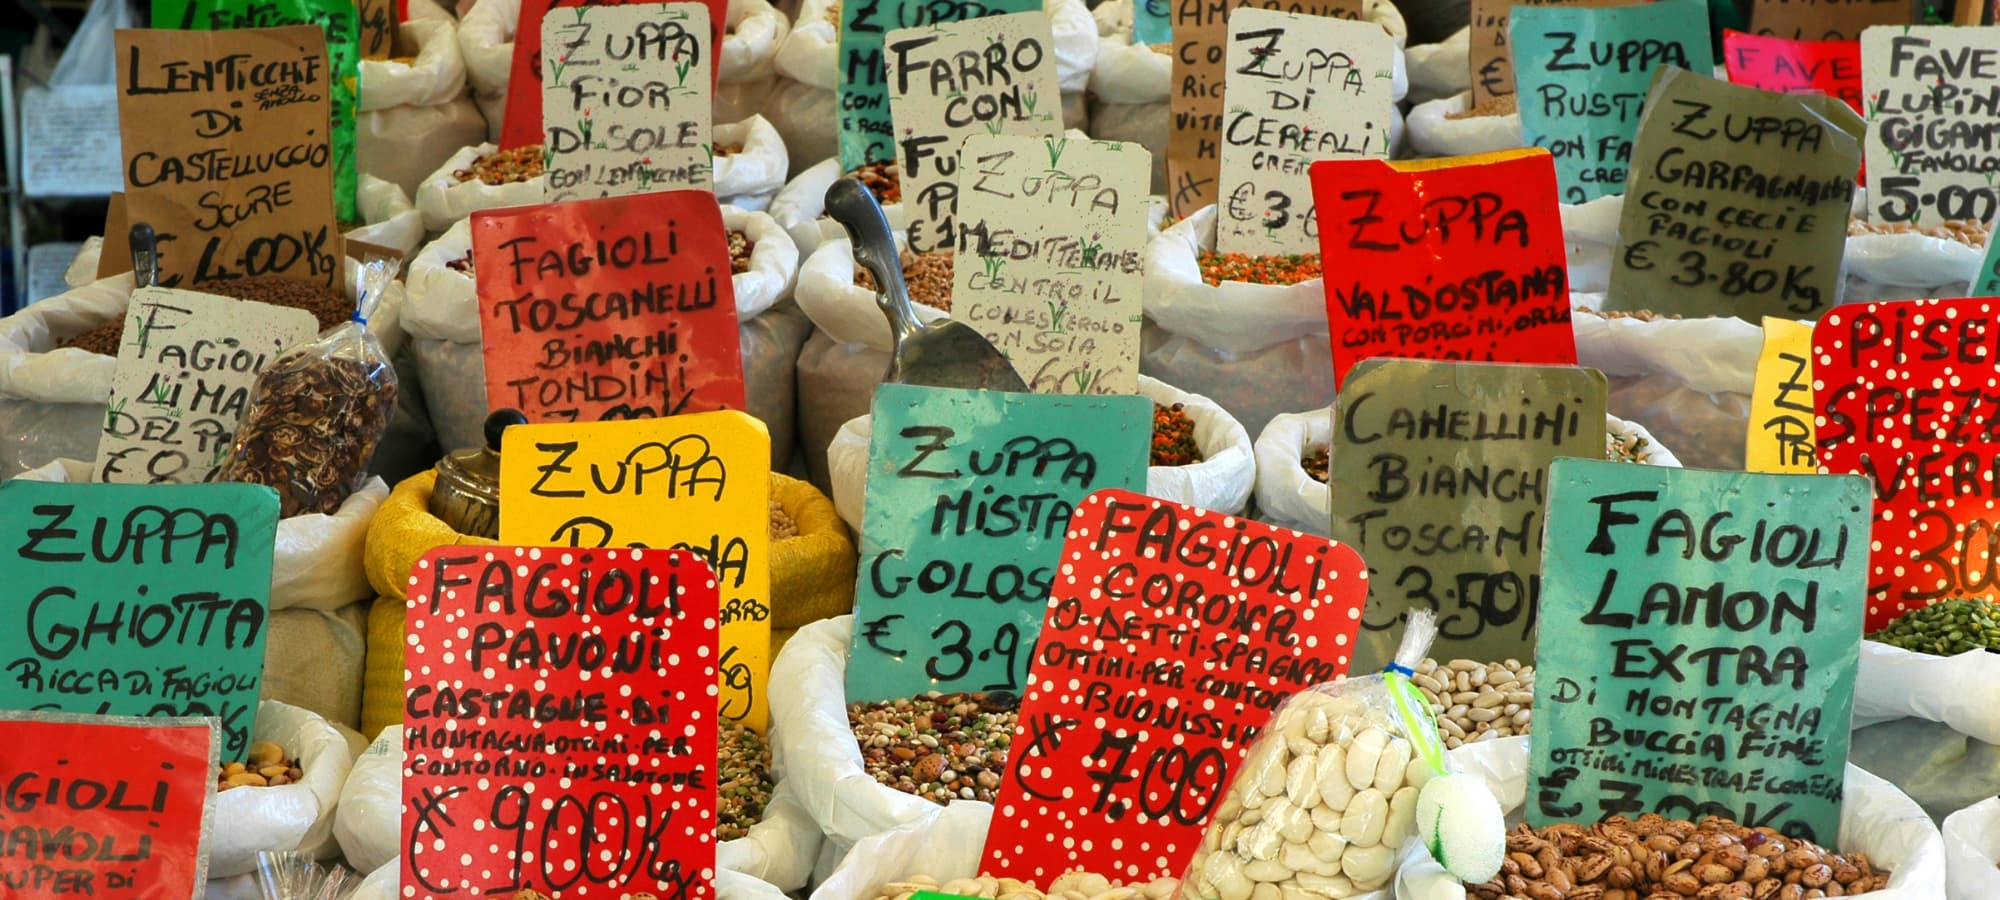 fair trade produce and spices for sale at a market